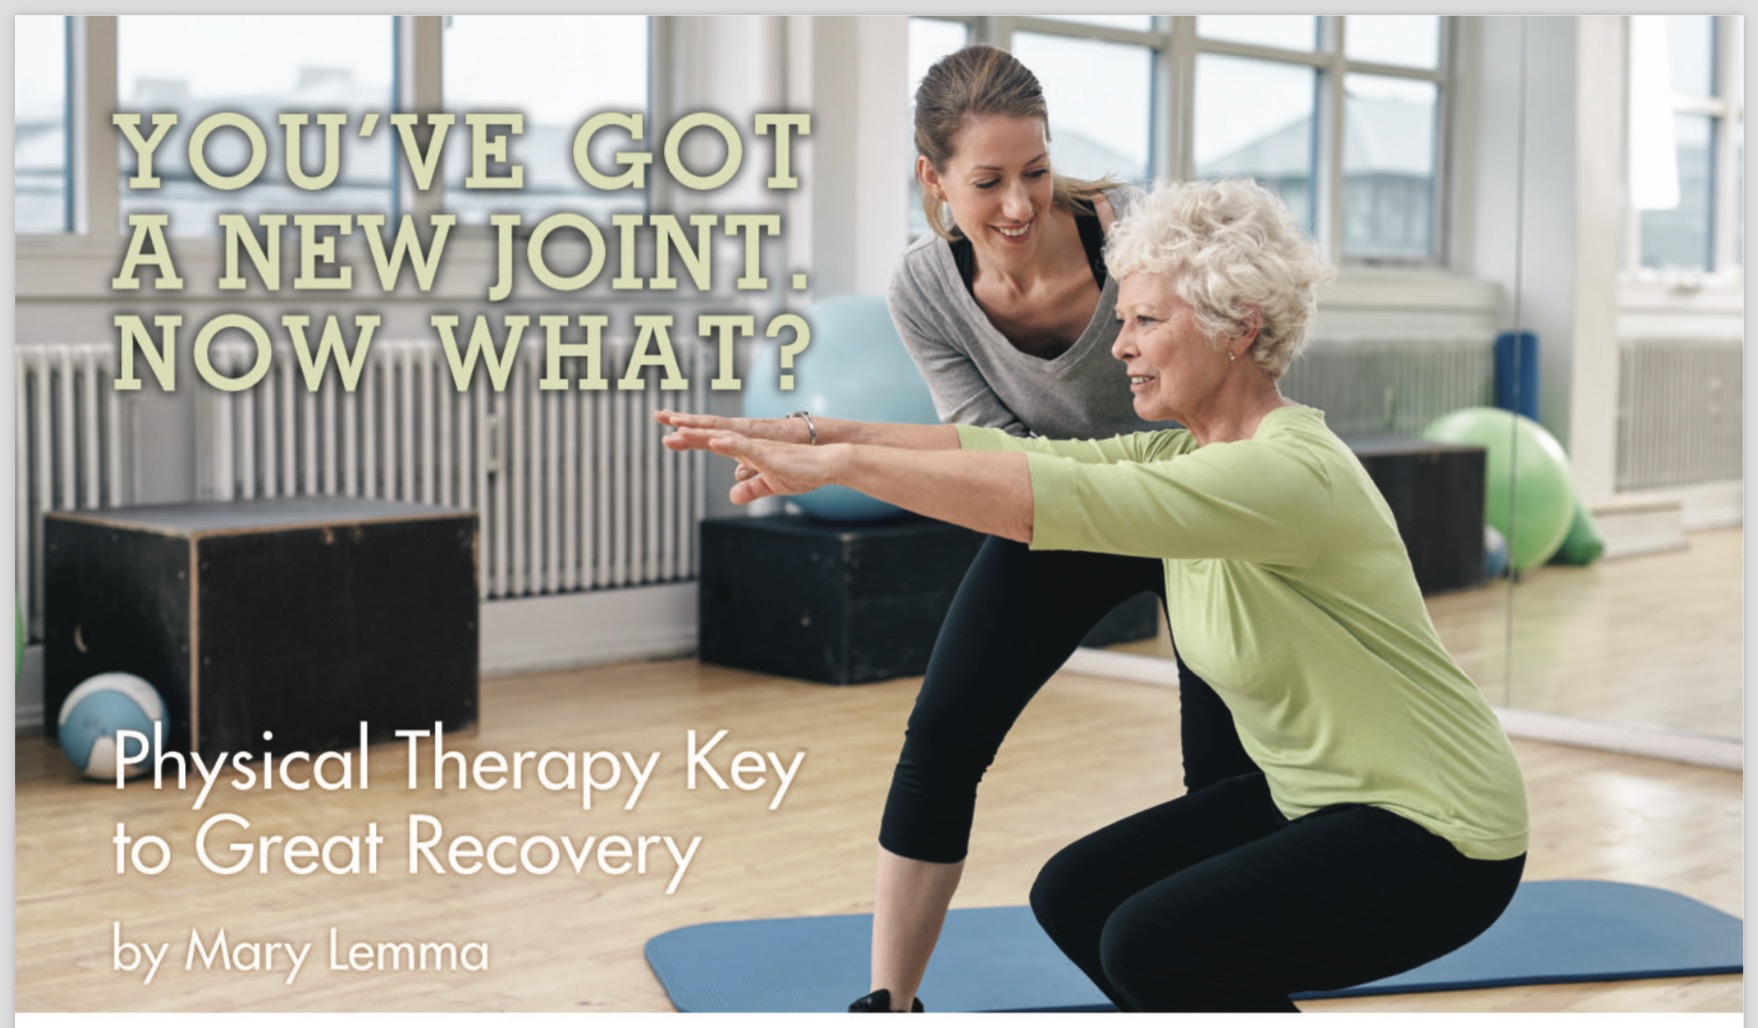 New Joint? Physical Therapy Key